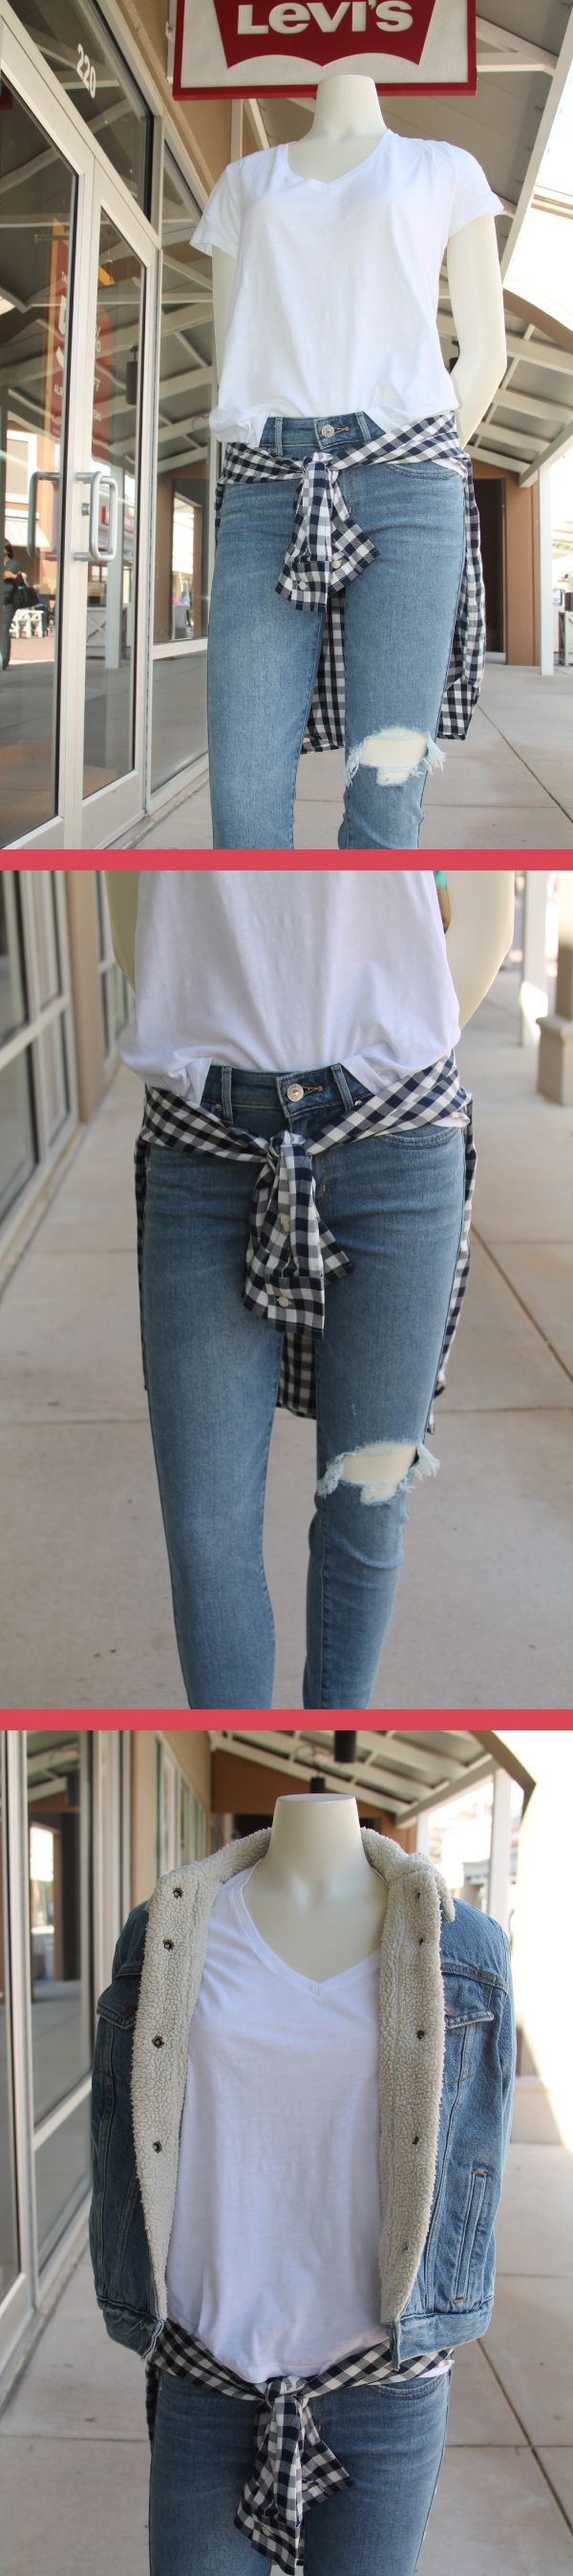 Classic jeans and white Tee look found at Levi's Outlet Store at the Outlets of Mississippi in Pearl, MS!  Buy more than one pair of jeans and get each pair at $39.95 each!